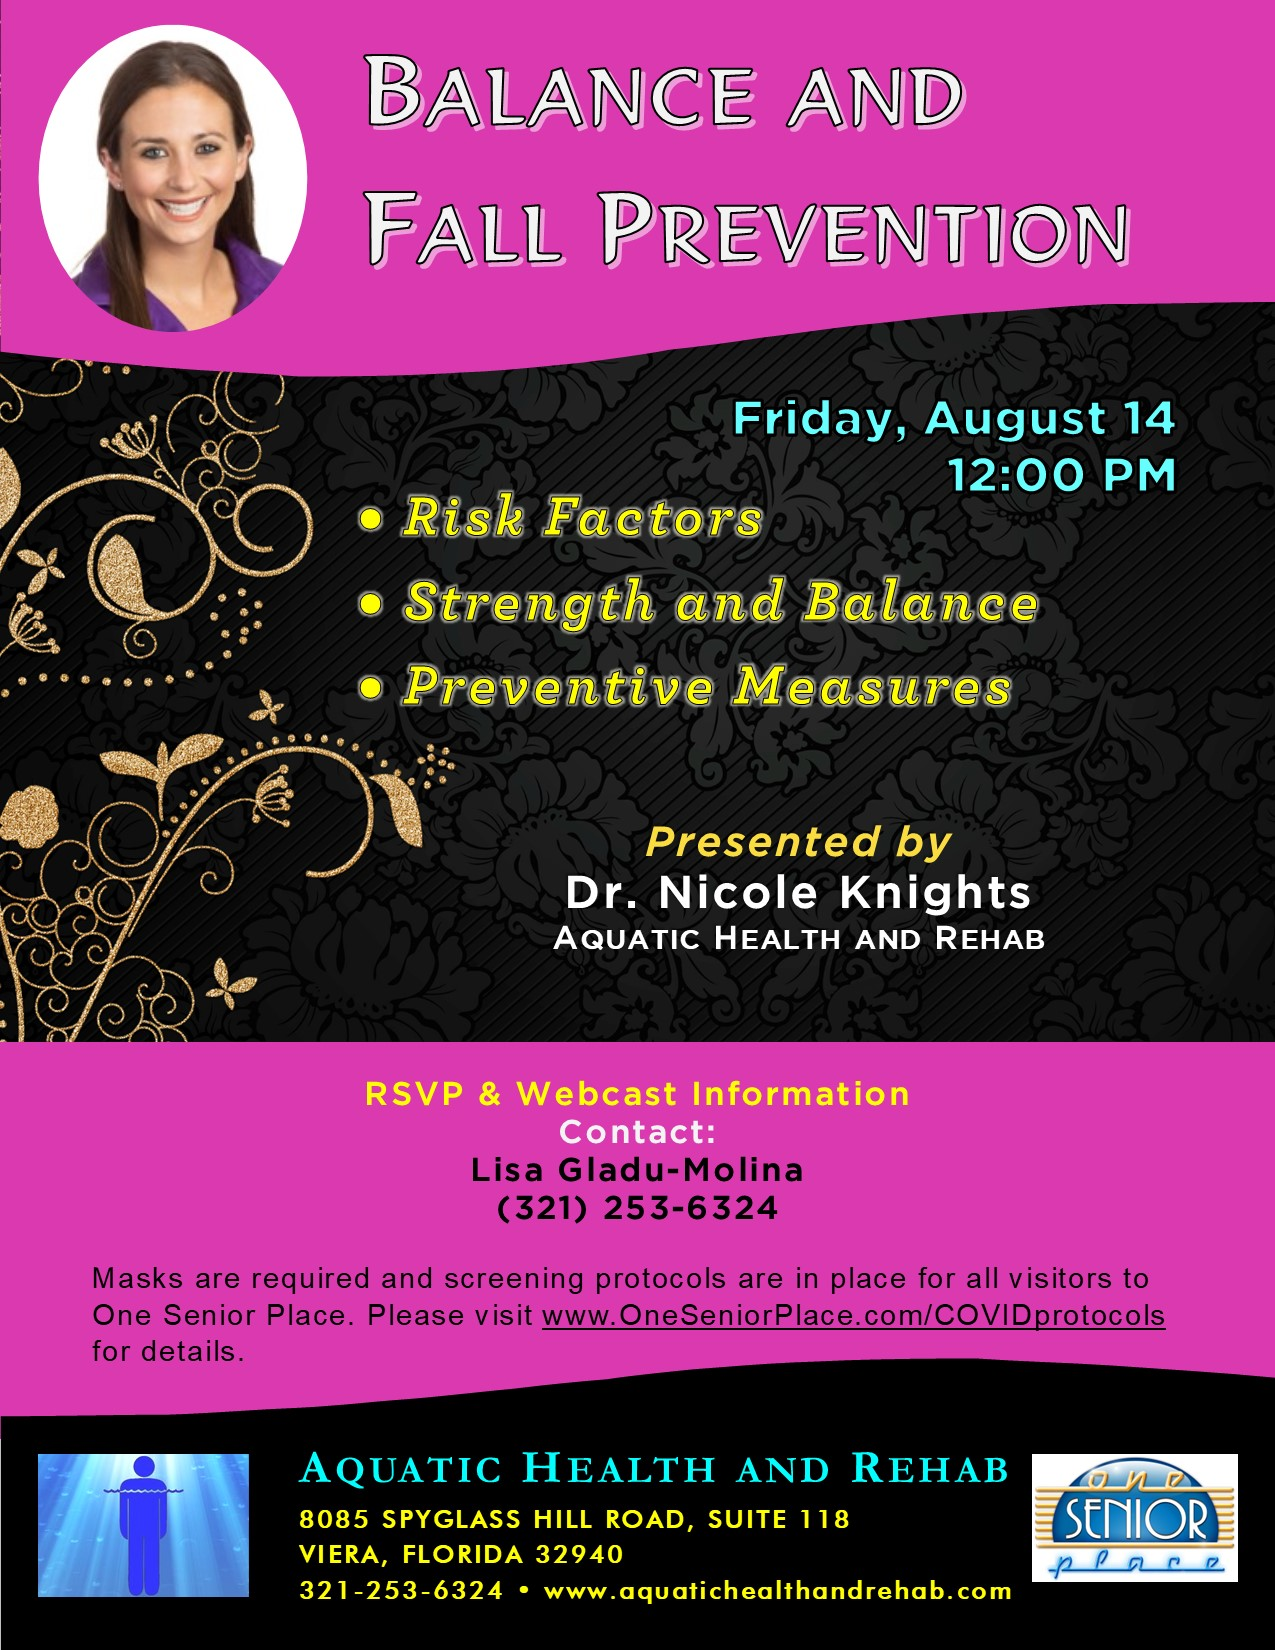 Balance and Fall Prevention presented by Dr. Nicole Knights, Aquatic Health and Rehab